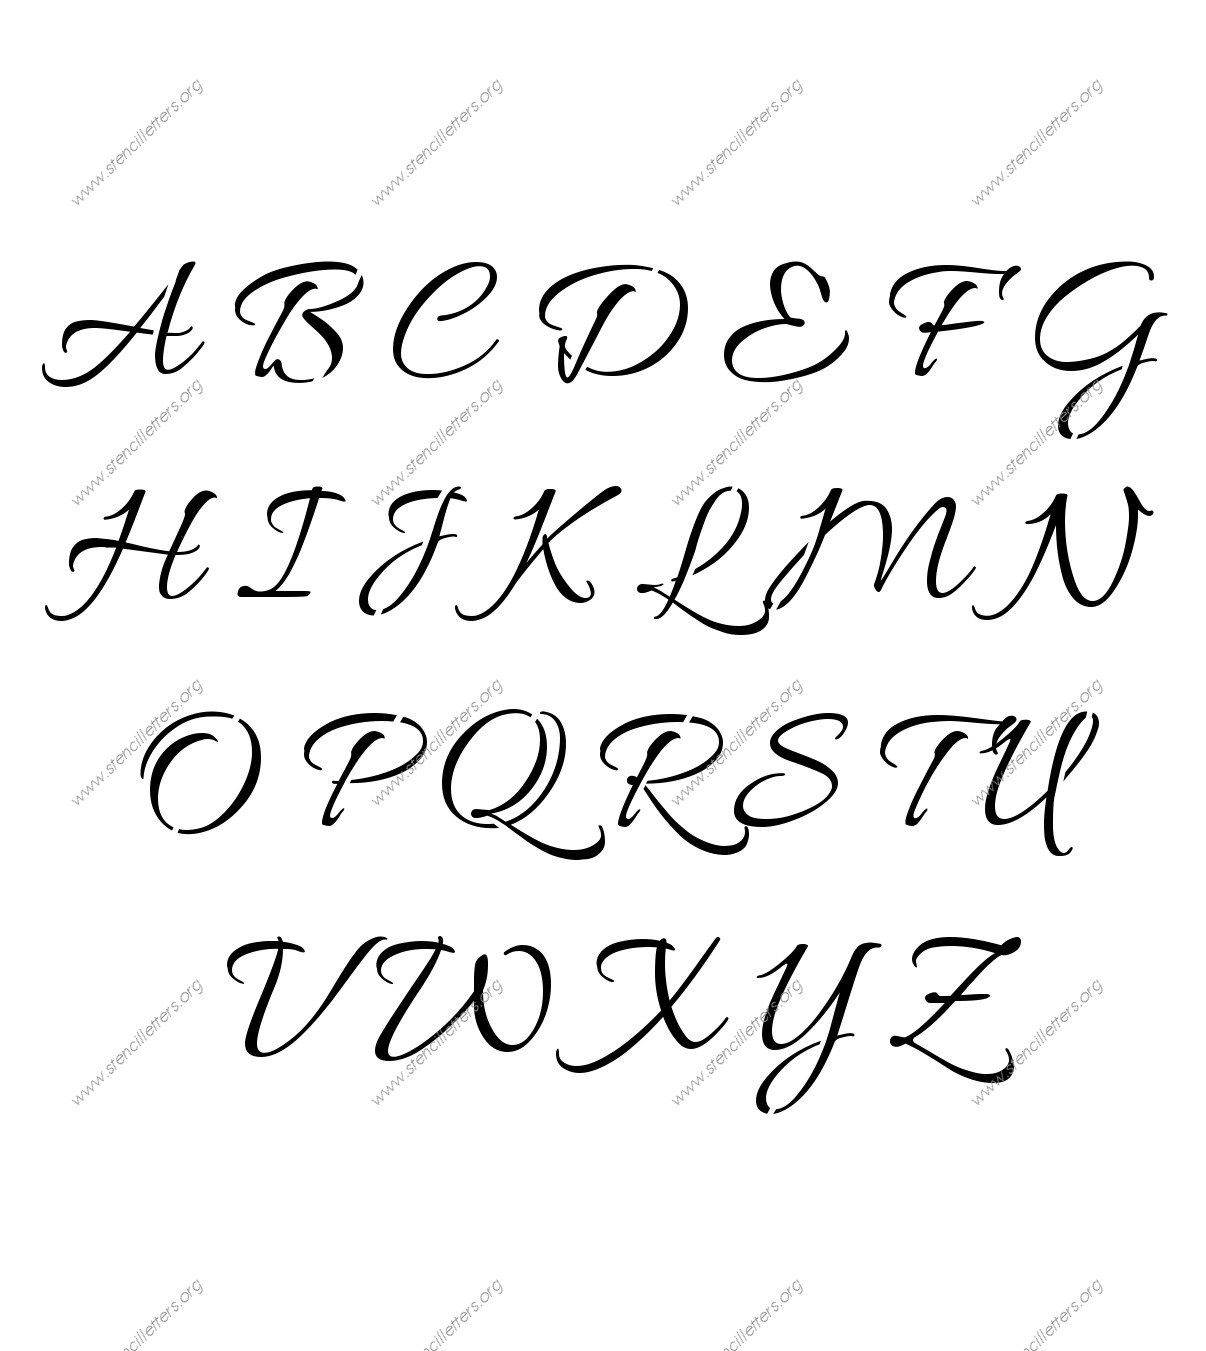 Connected Cursive Uppercase & Lowercase Letter Stencils A-Z 1/4 To - Free Printable Calligraphy Letter Stencils